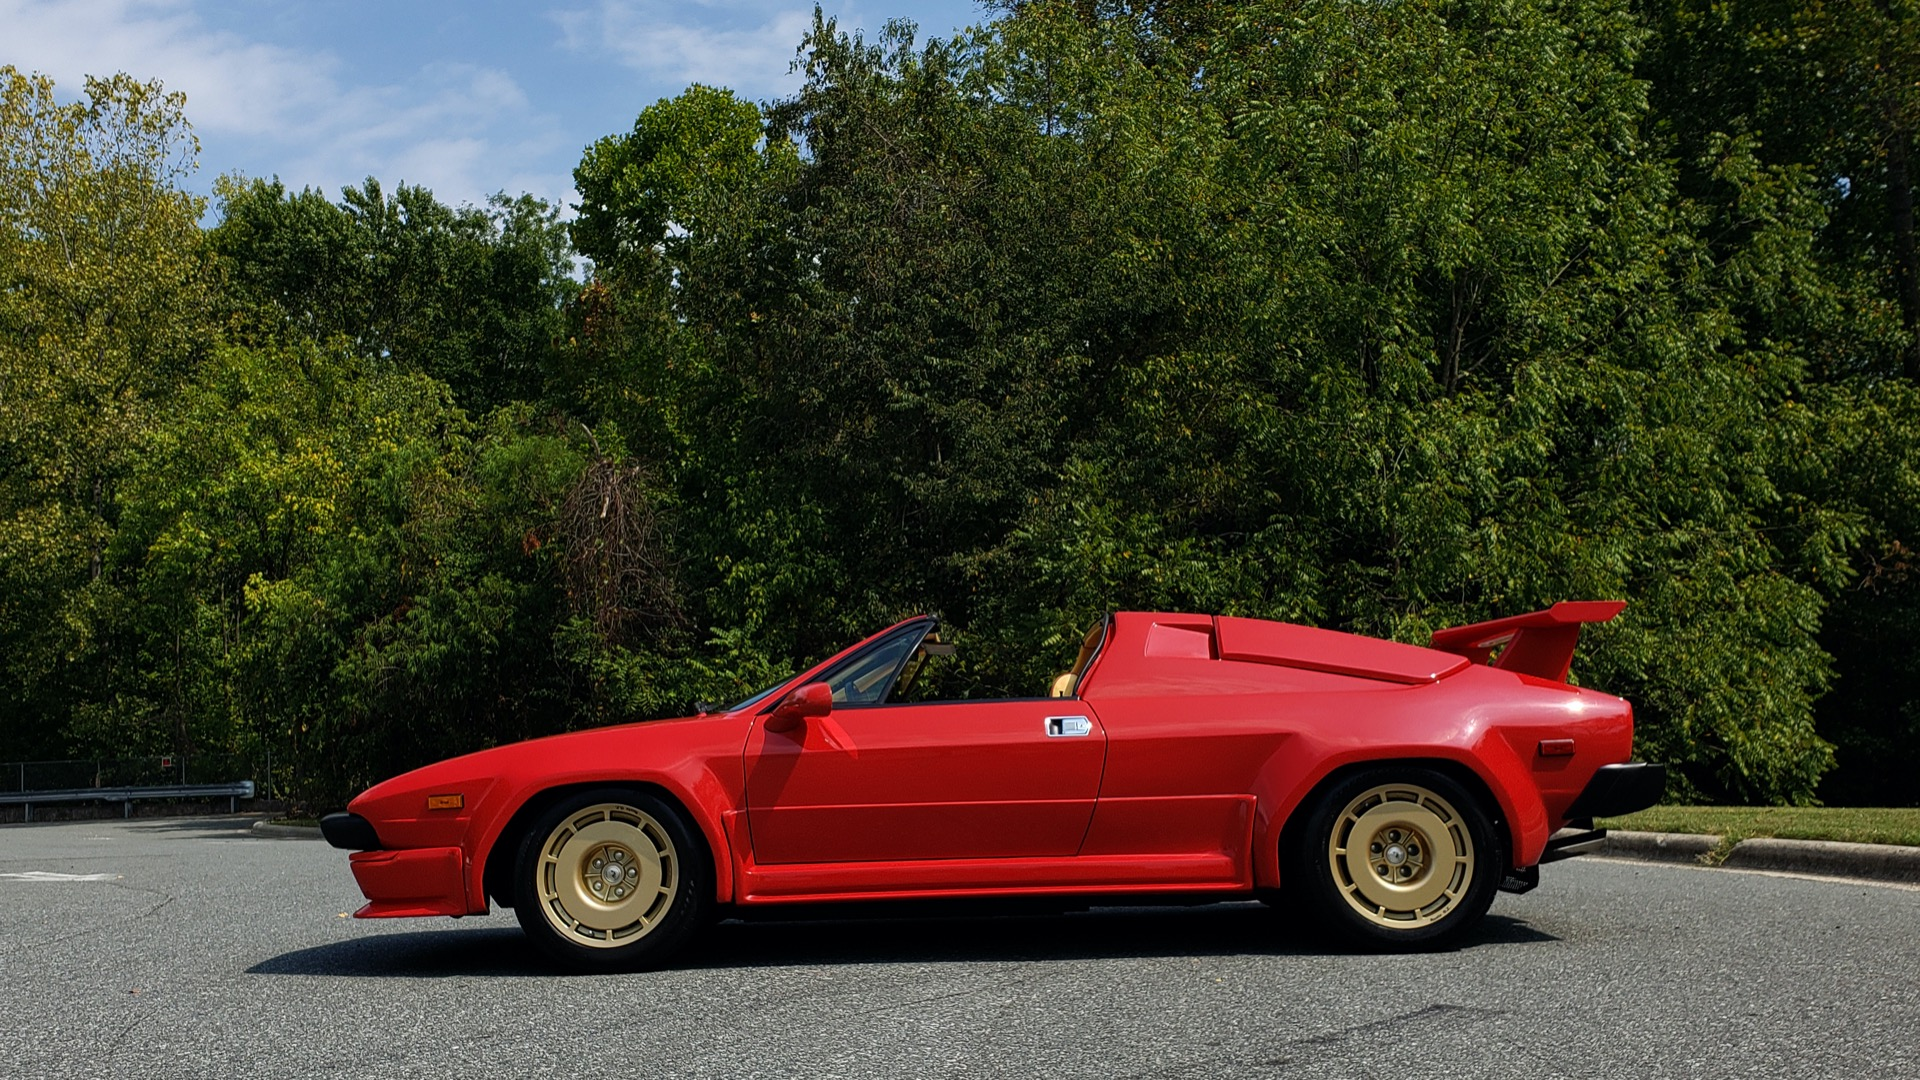 Used 1988 Lamborghini JALPA 3.5 / 5-SPD MANUAL / LOW MILES / EXCELLENT CONDITION for sale Sold at Formula Imports in Charlotte NC 28227 22